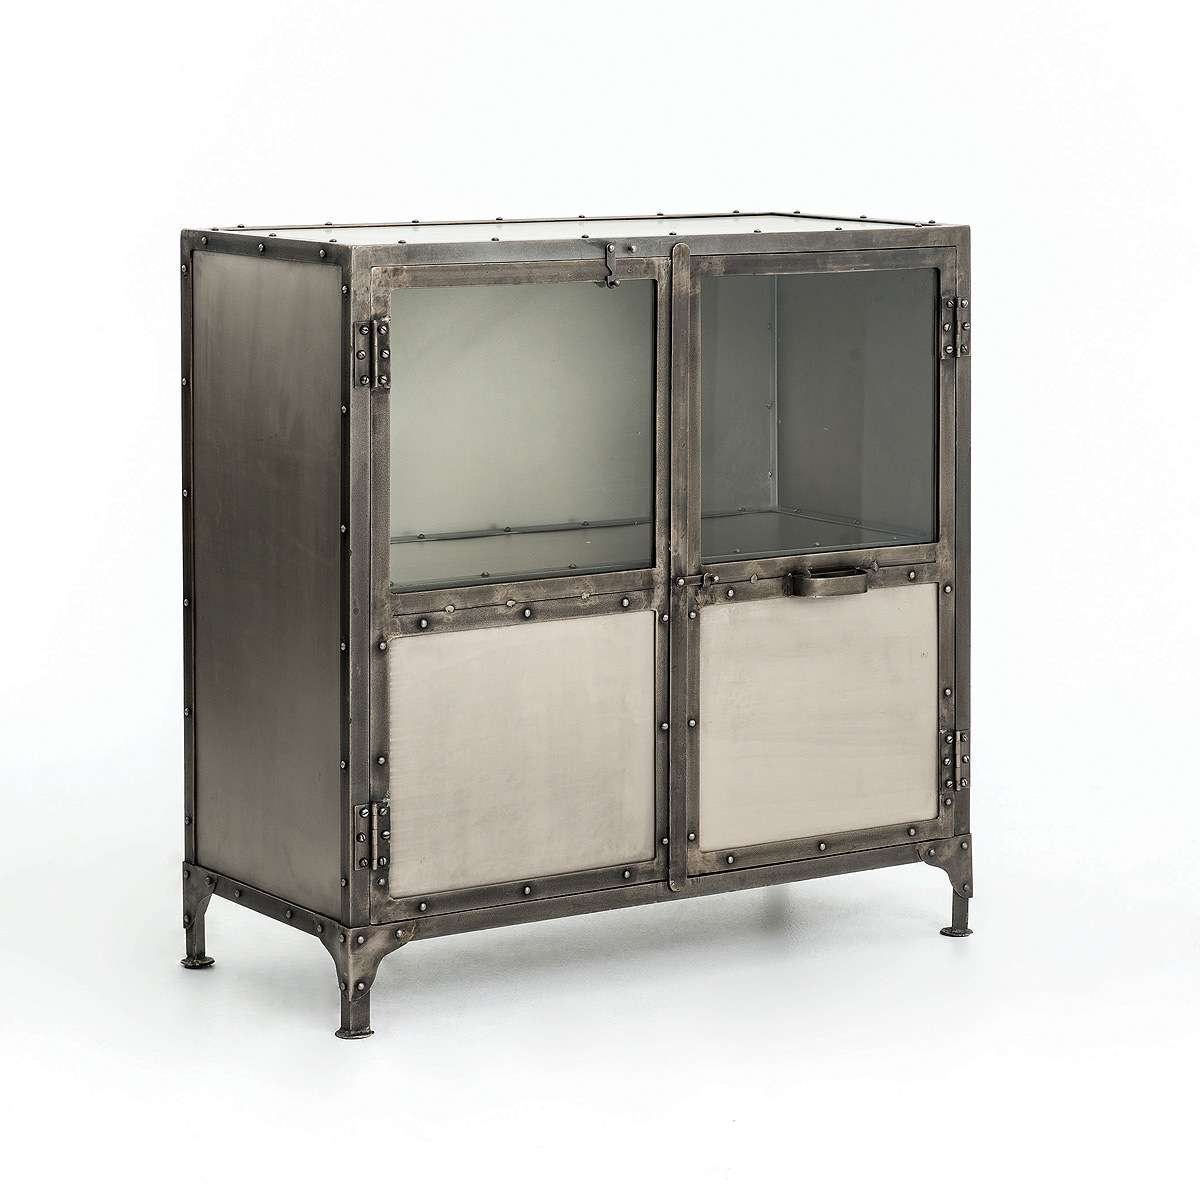 This Undeniably Charming Sideboard Makes A Beautiful Addition To Throughout Industrial Sideboards (View 19 of 20)